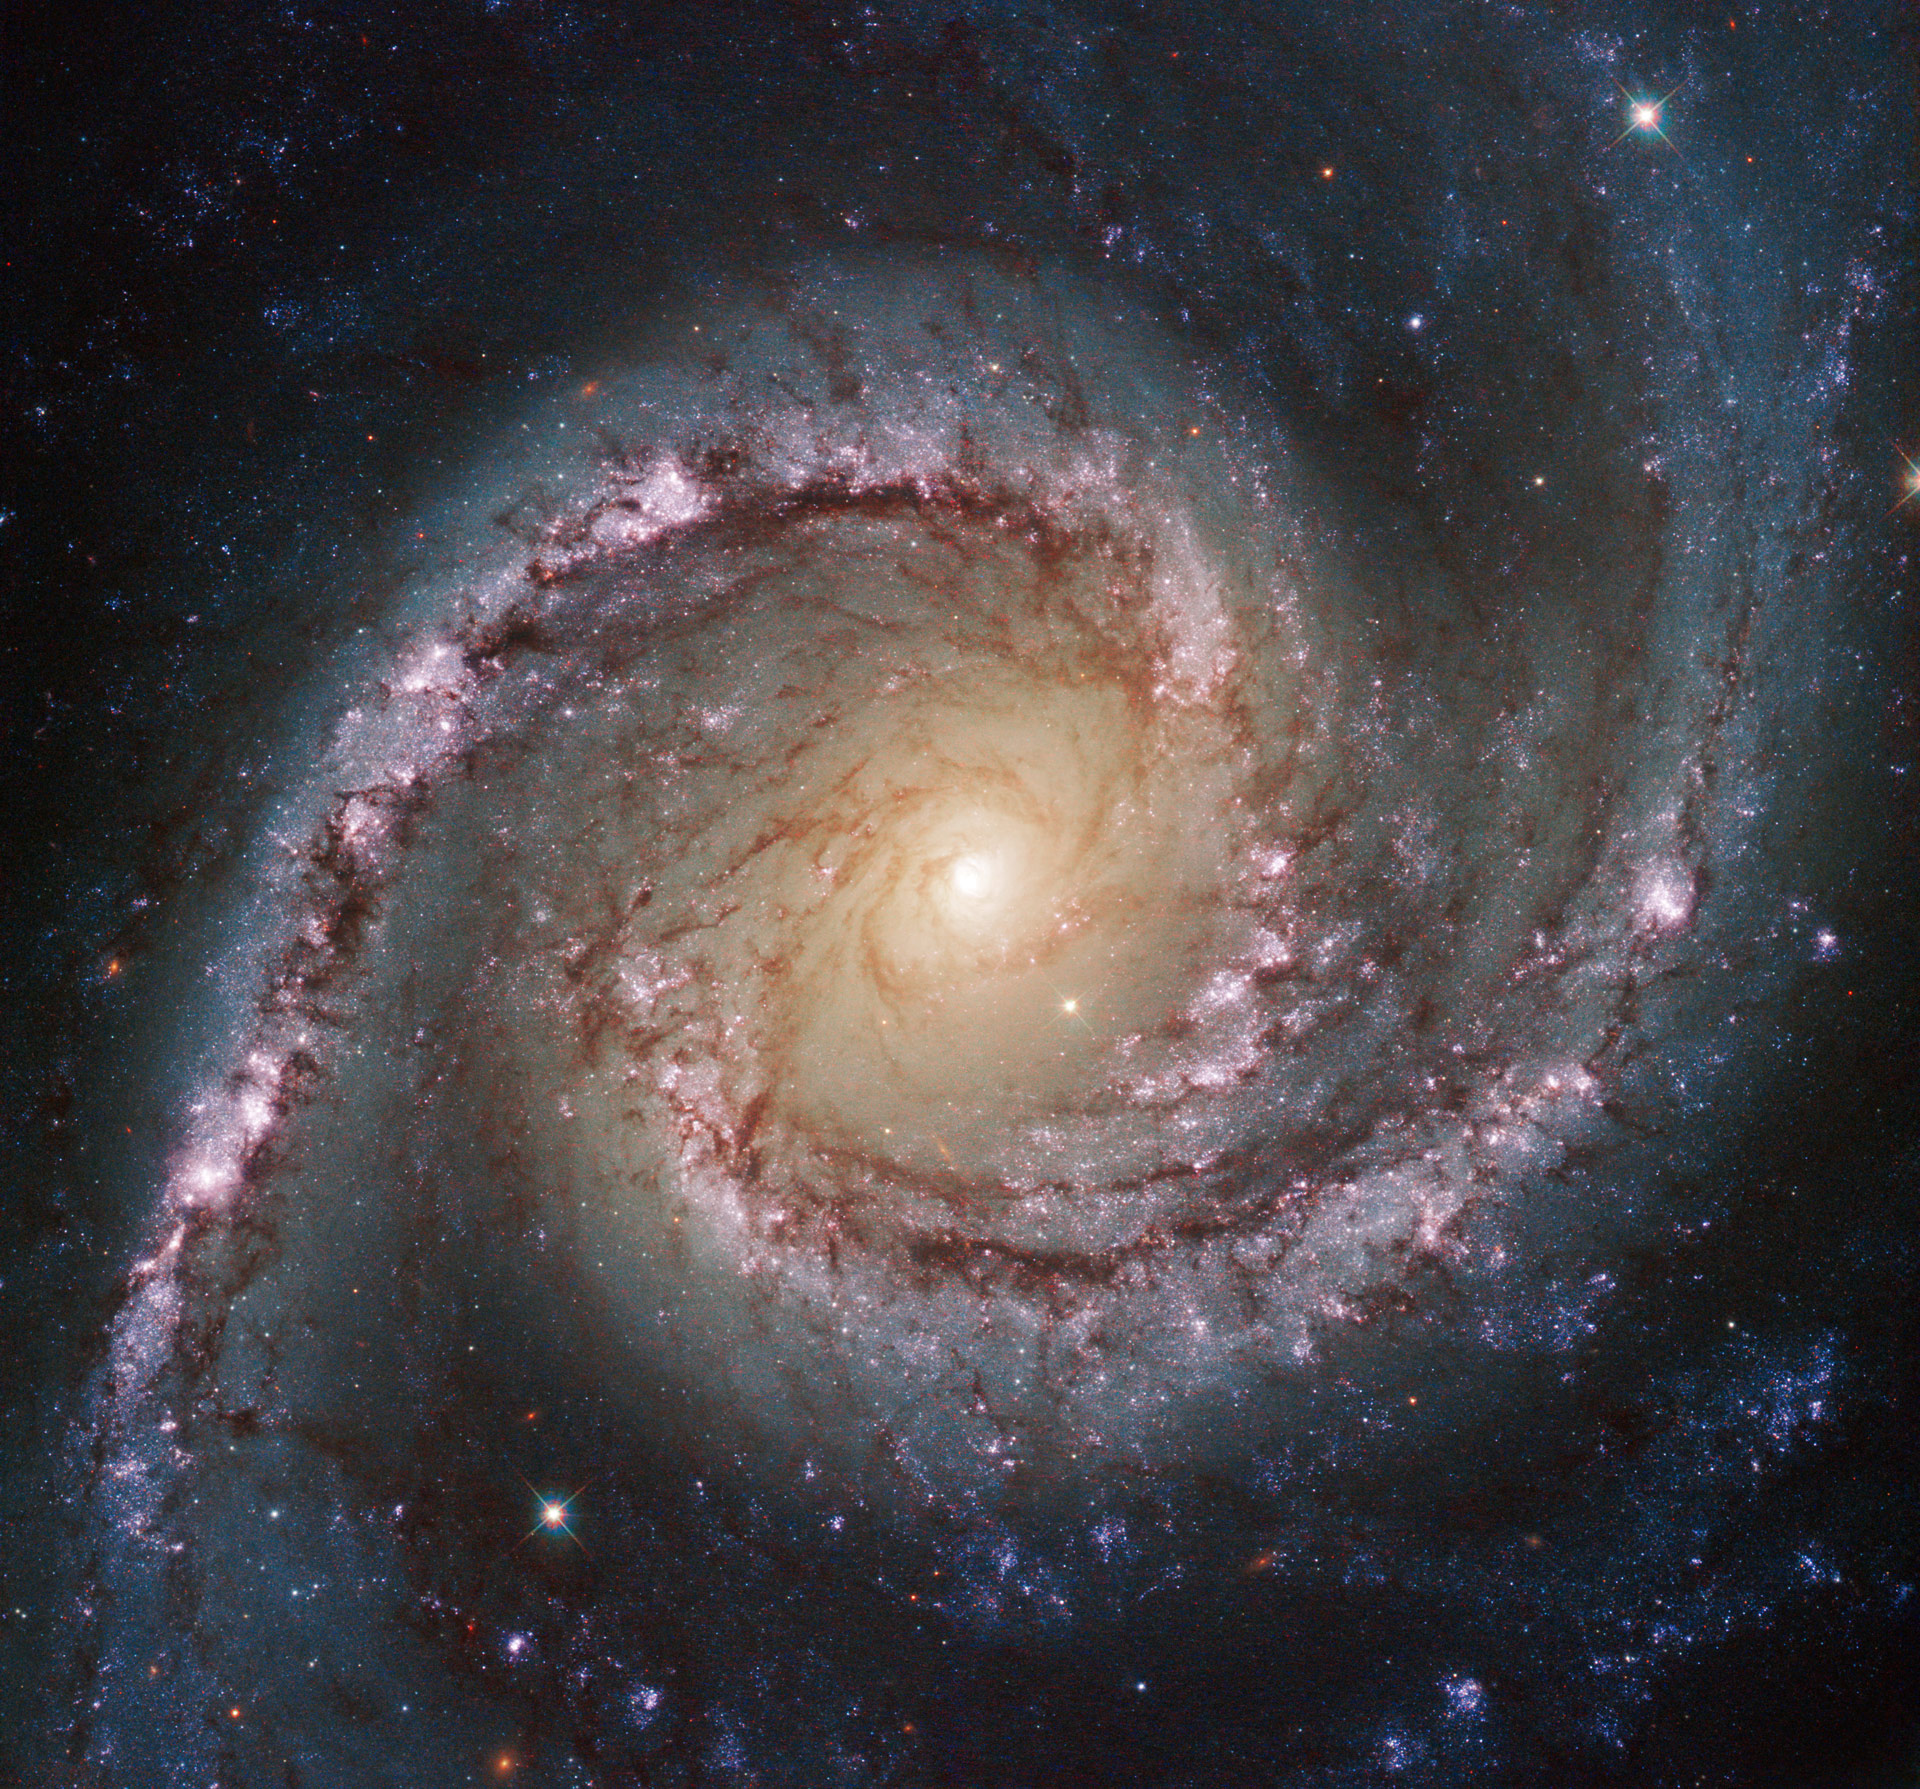 Hubble Views Intermediate Spiral Galaxy Ngc 1566